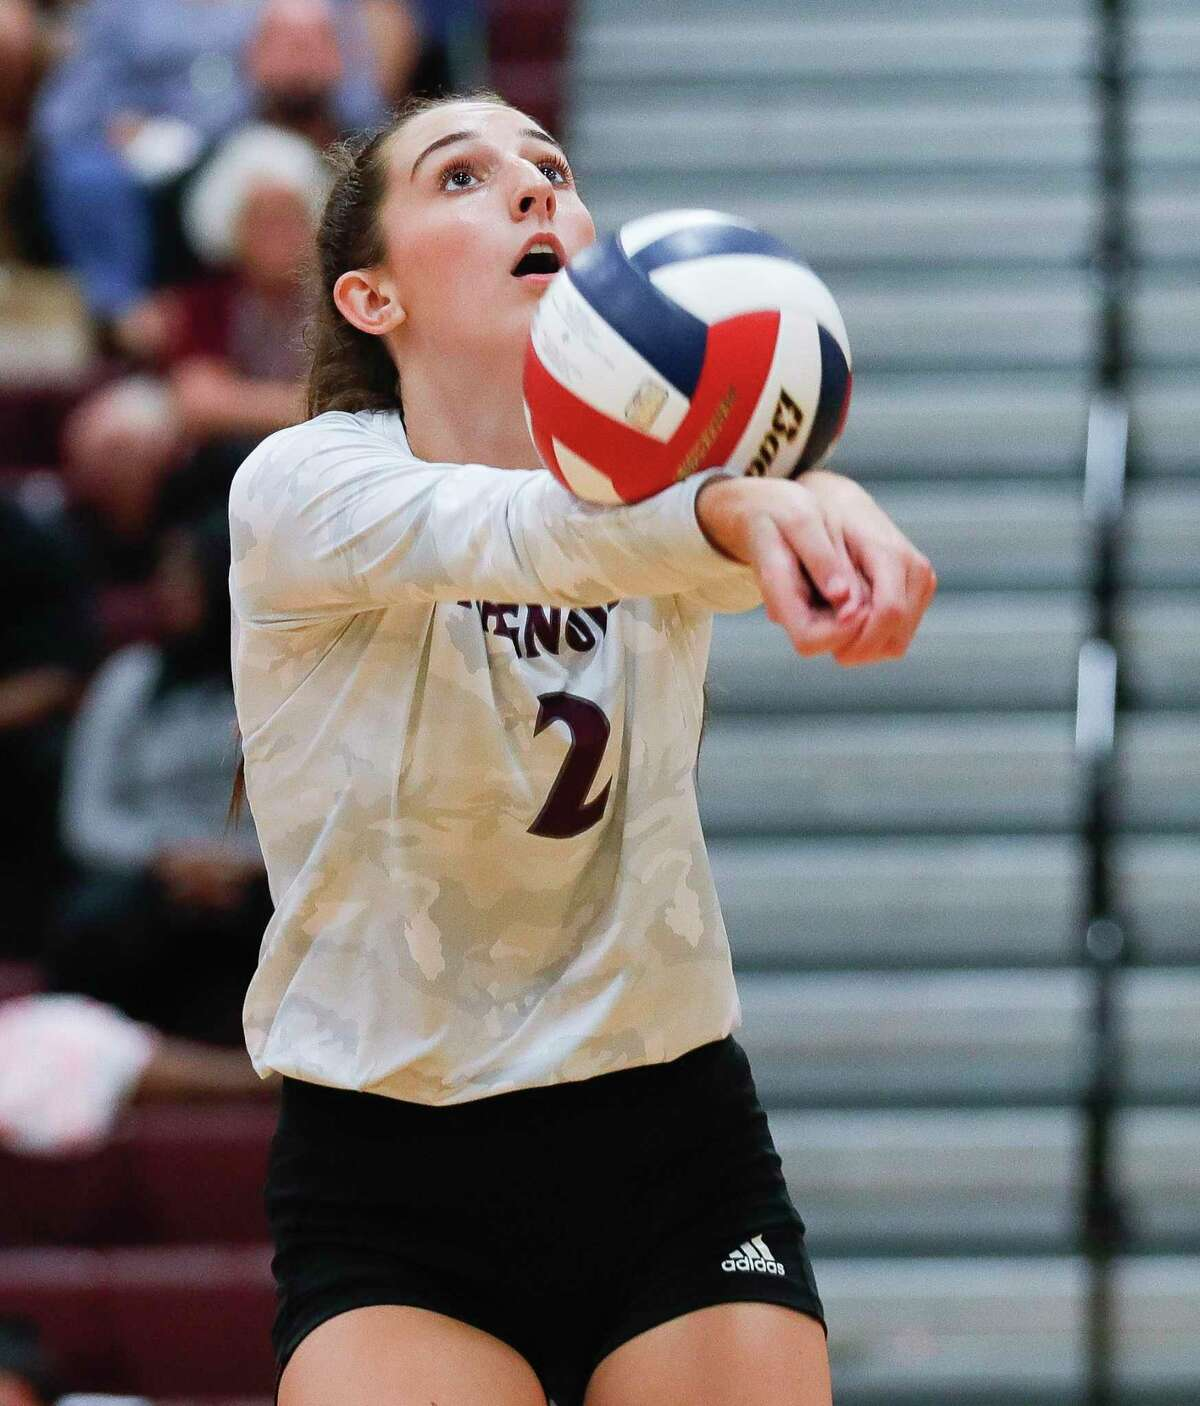 Magnolia setter Chloe Richards (2) makes a pass in the first set during a high school volleyball match at Magnolia High School, Tuesday, Aug. 24, 2021, in Magnolia.